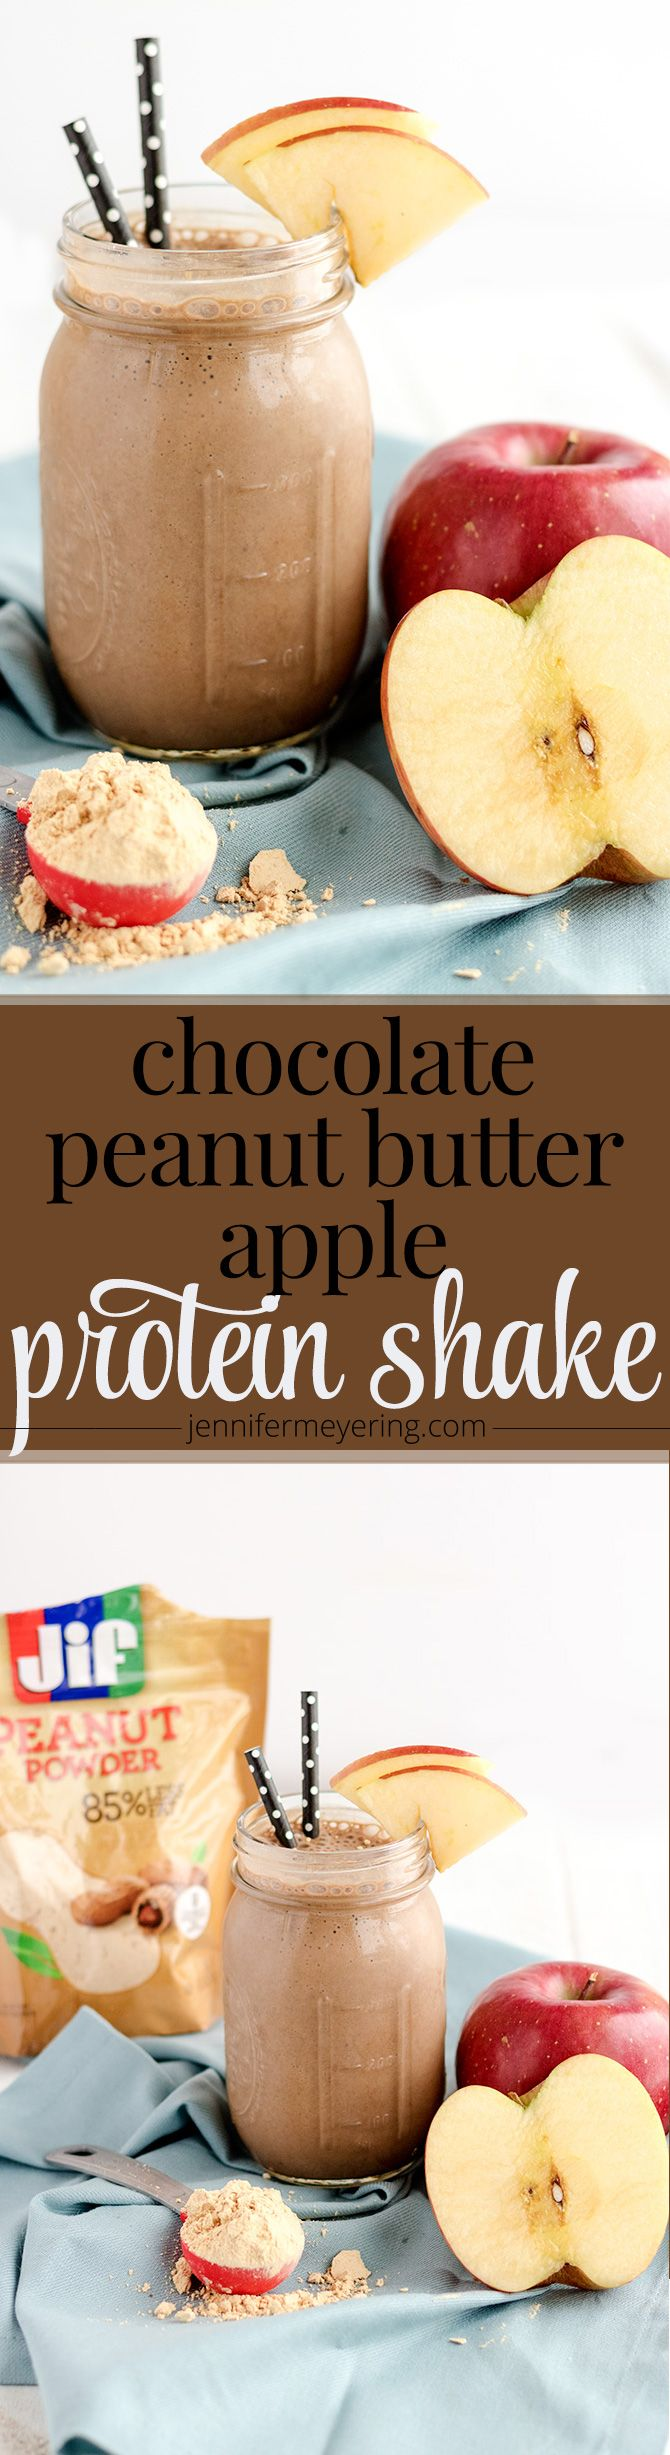 25+ best ideas about Chocolate shake on Pinterest | Morning drinks ...